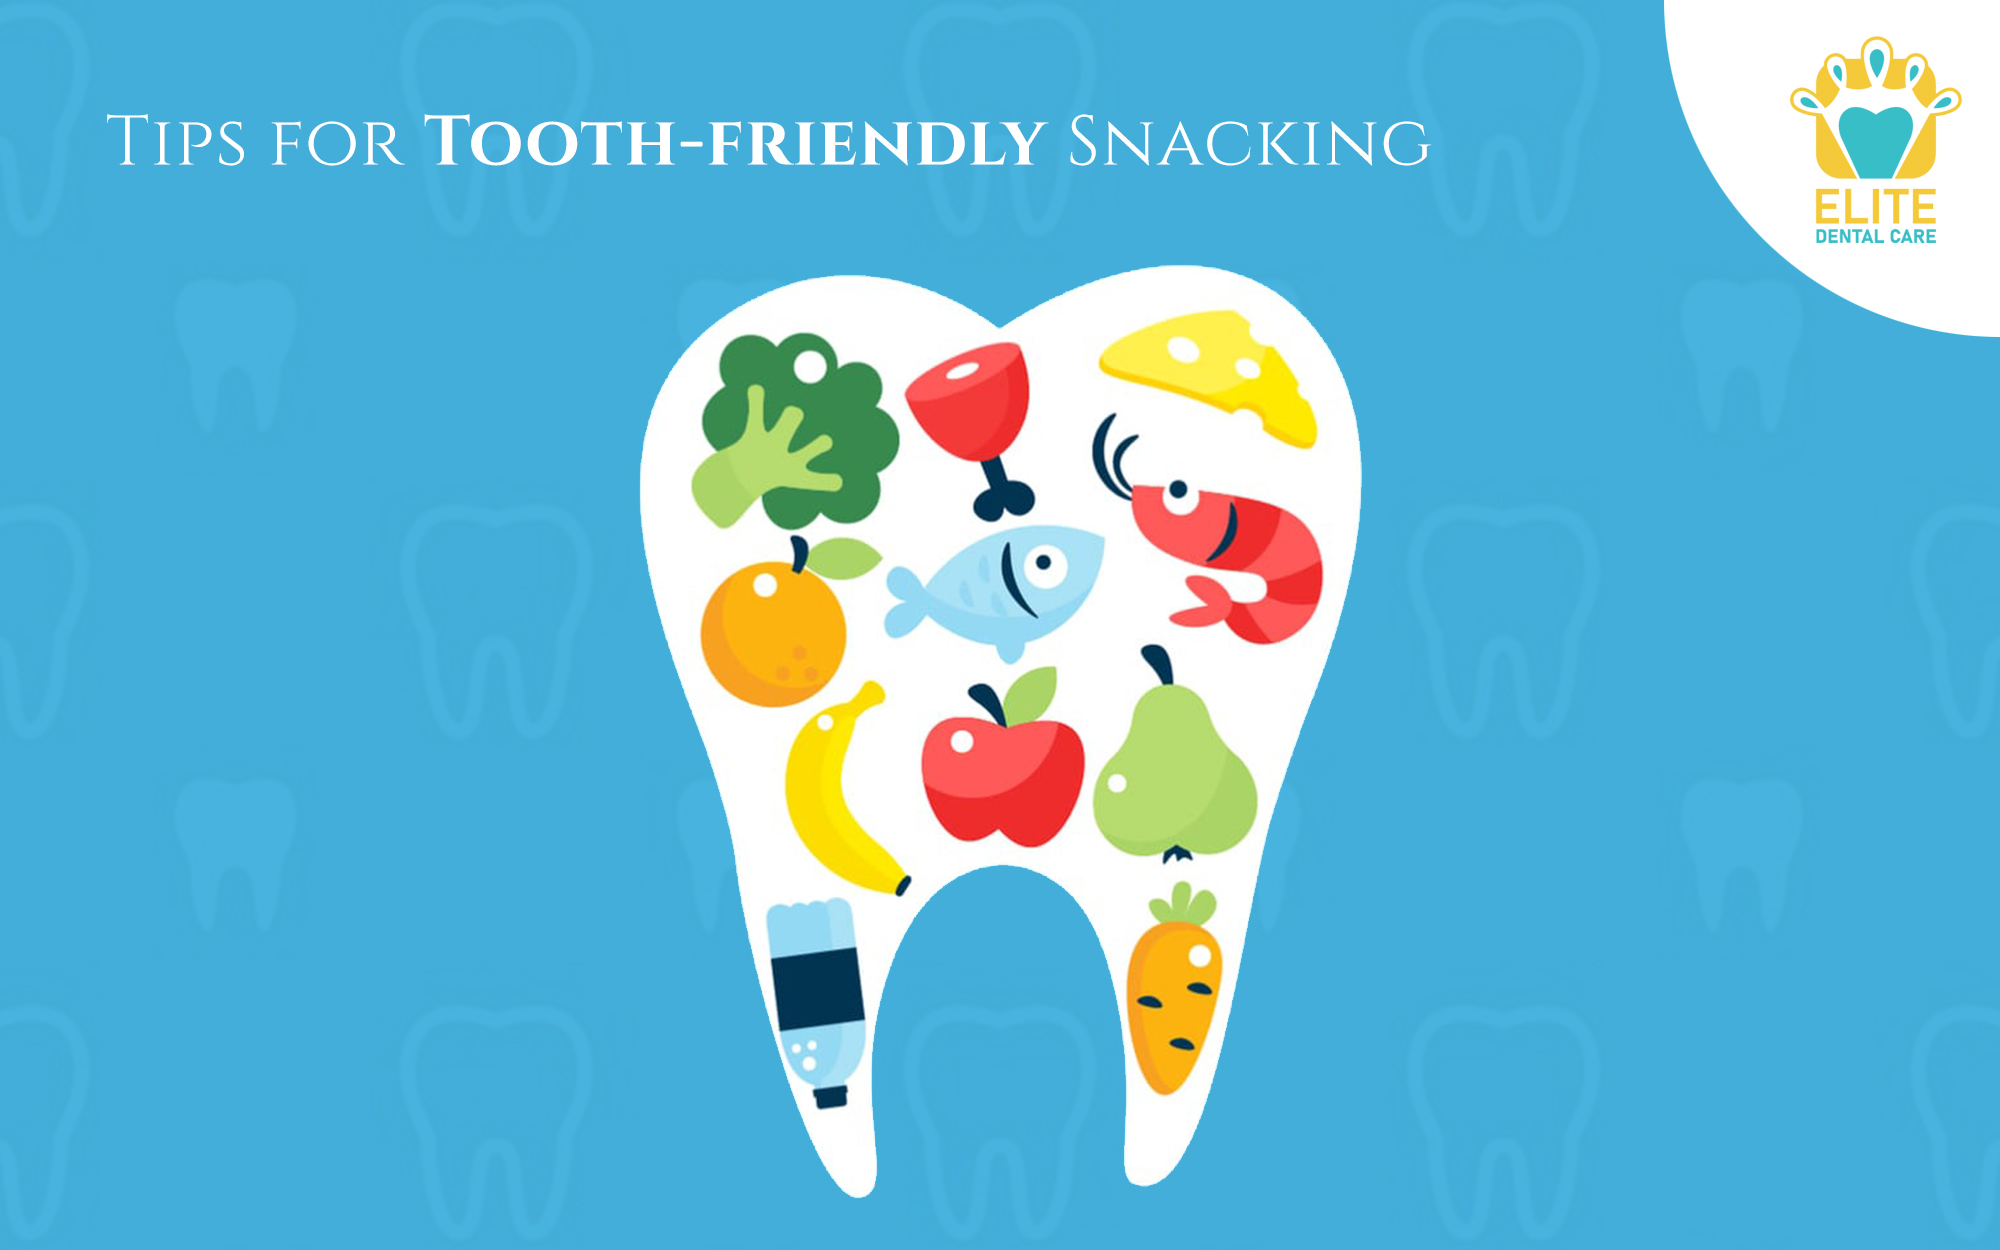 TIPS FOR TOOTH-FRIENDLY SNACKING